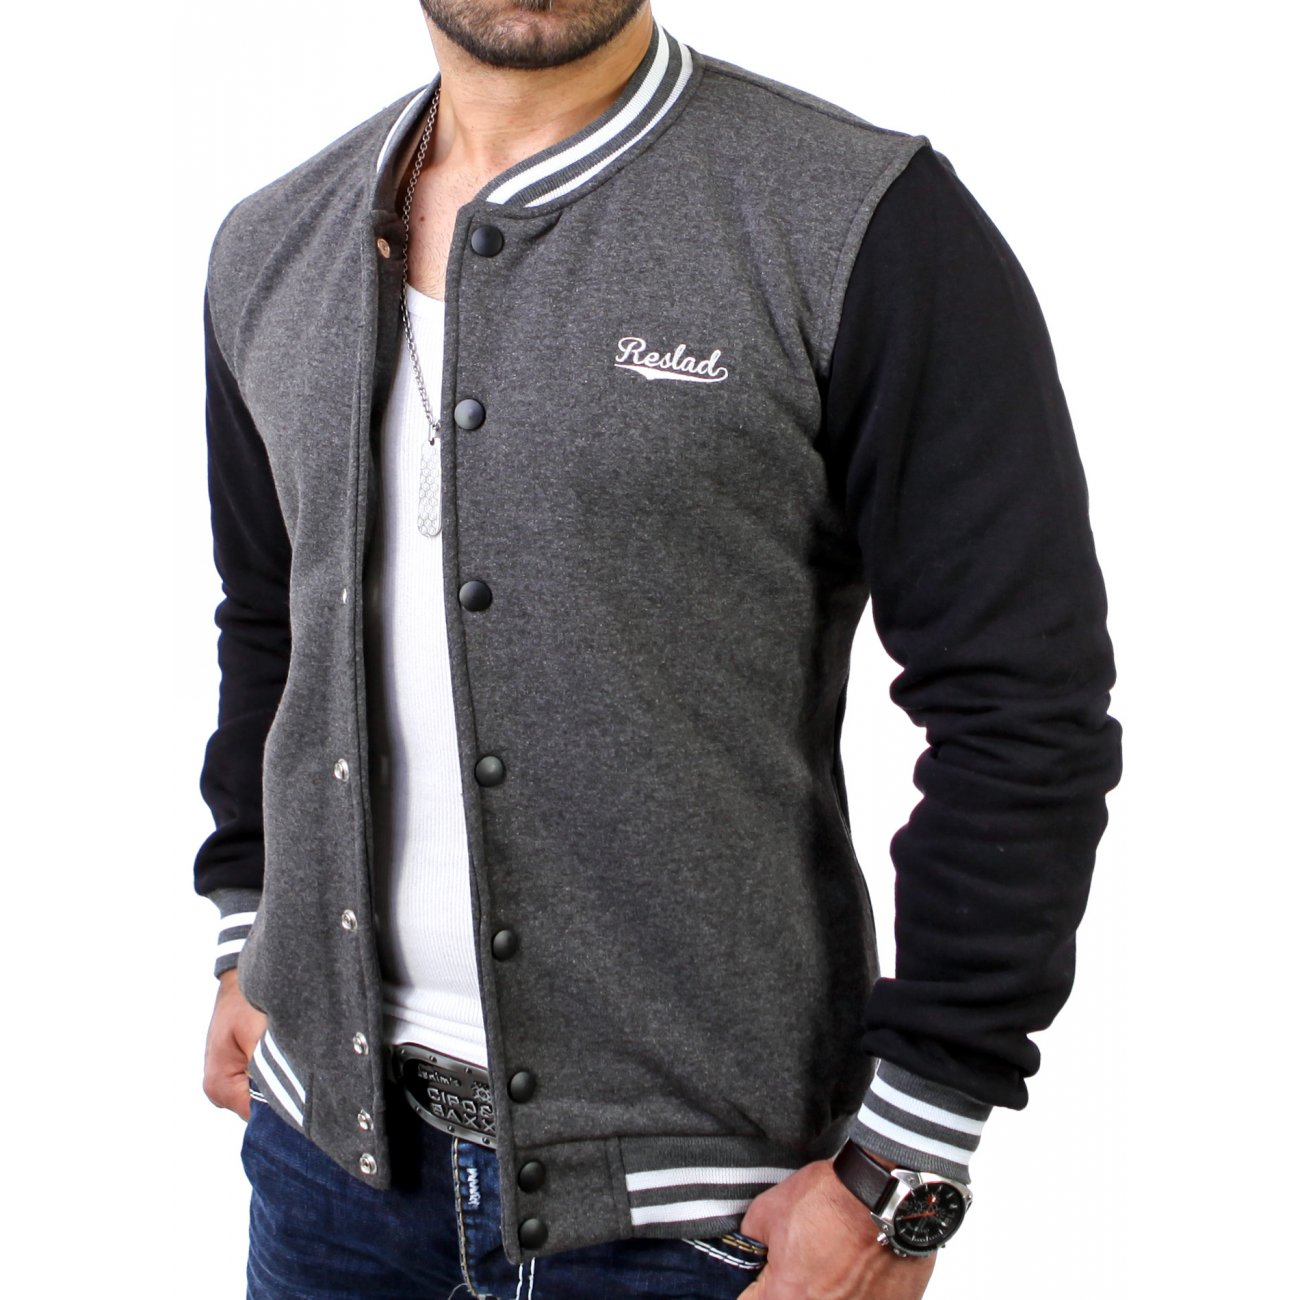 Reslad-Herren-Jacke-Authentic-Collegejacke-RS-1150.jpg